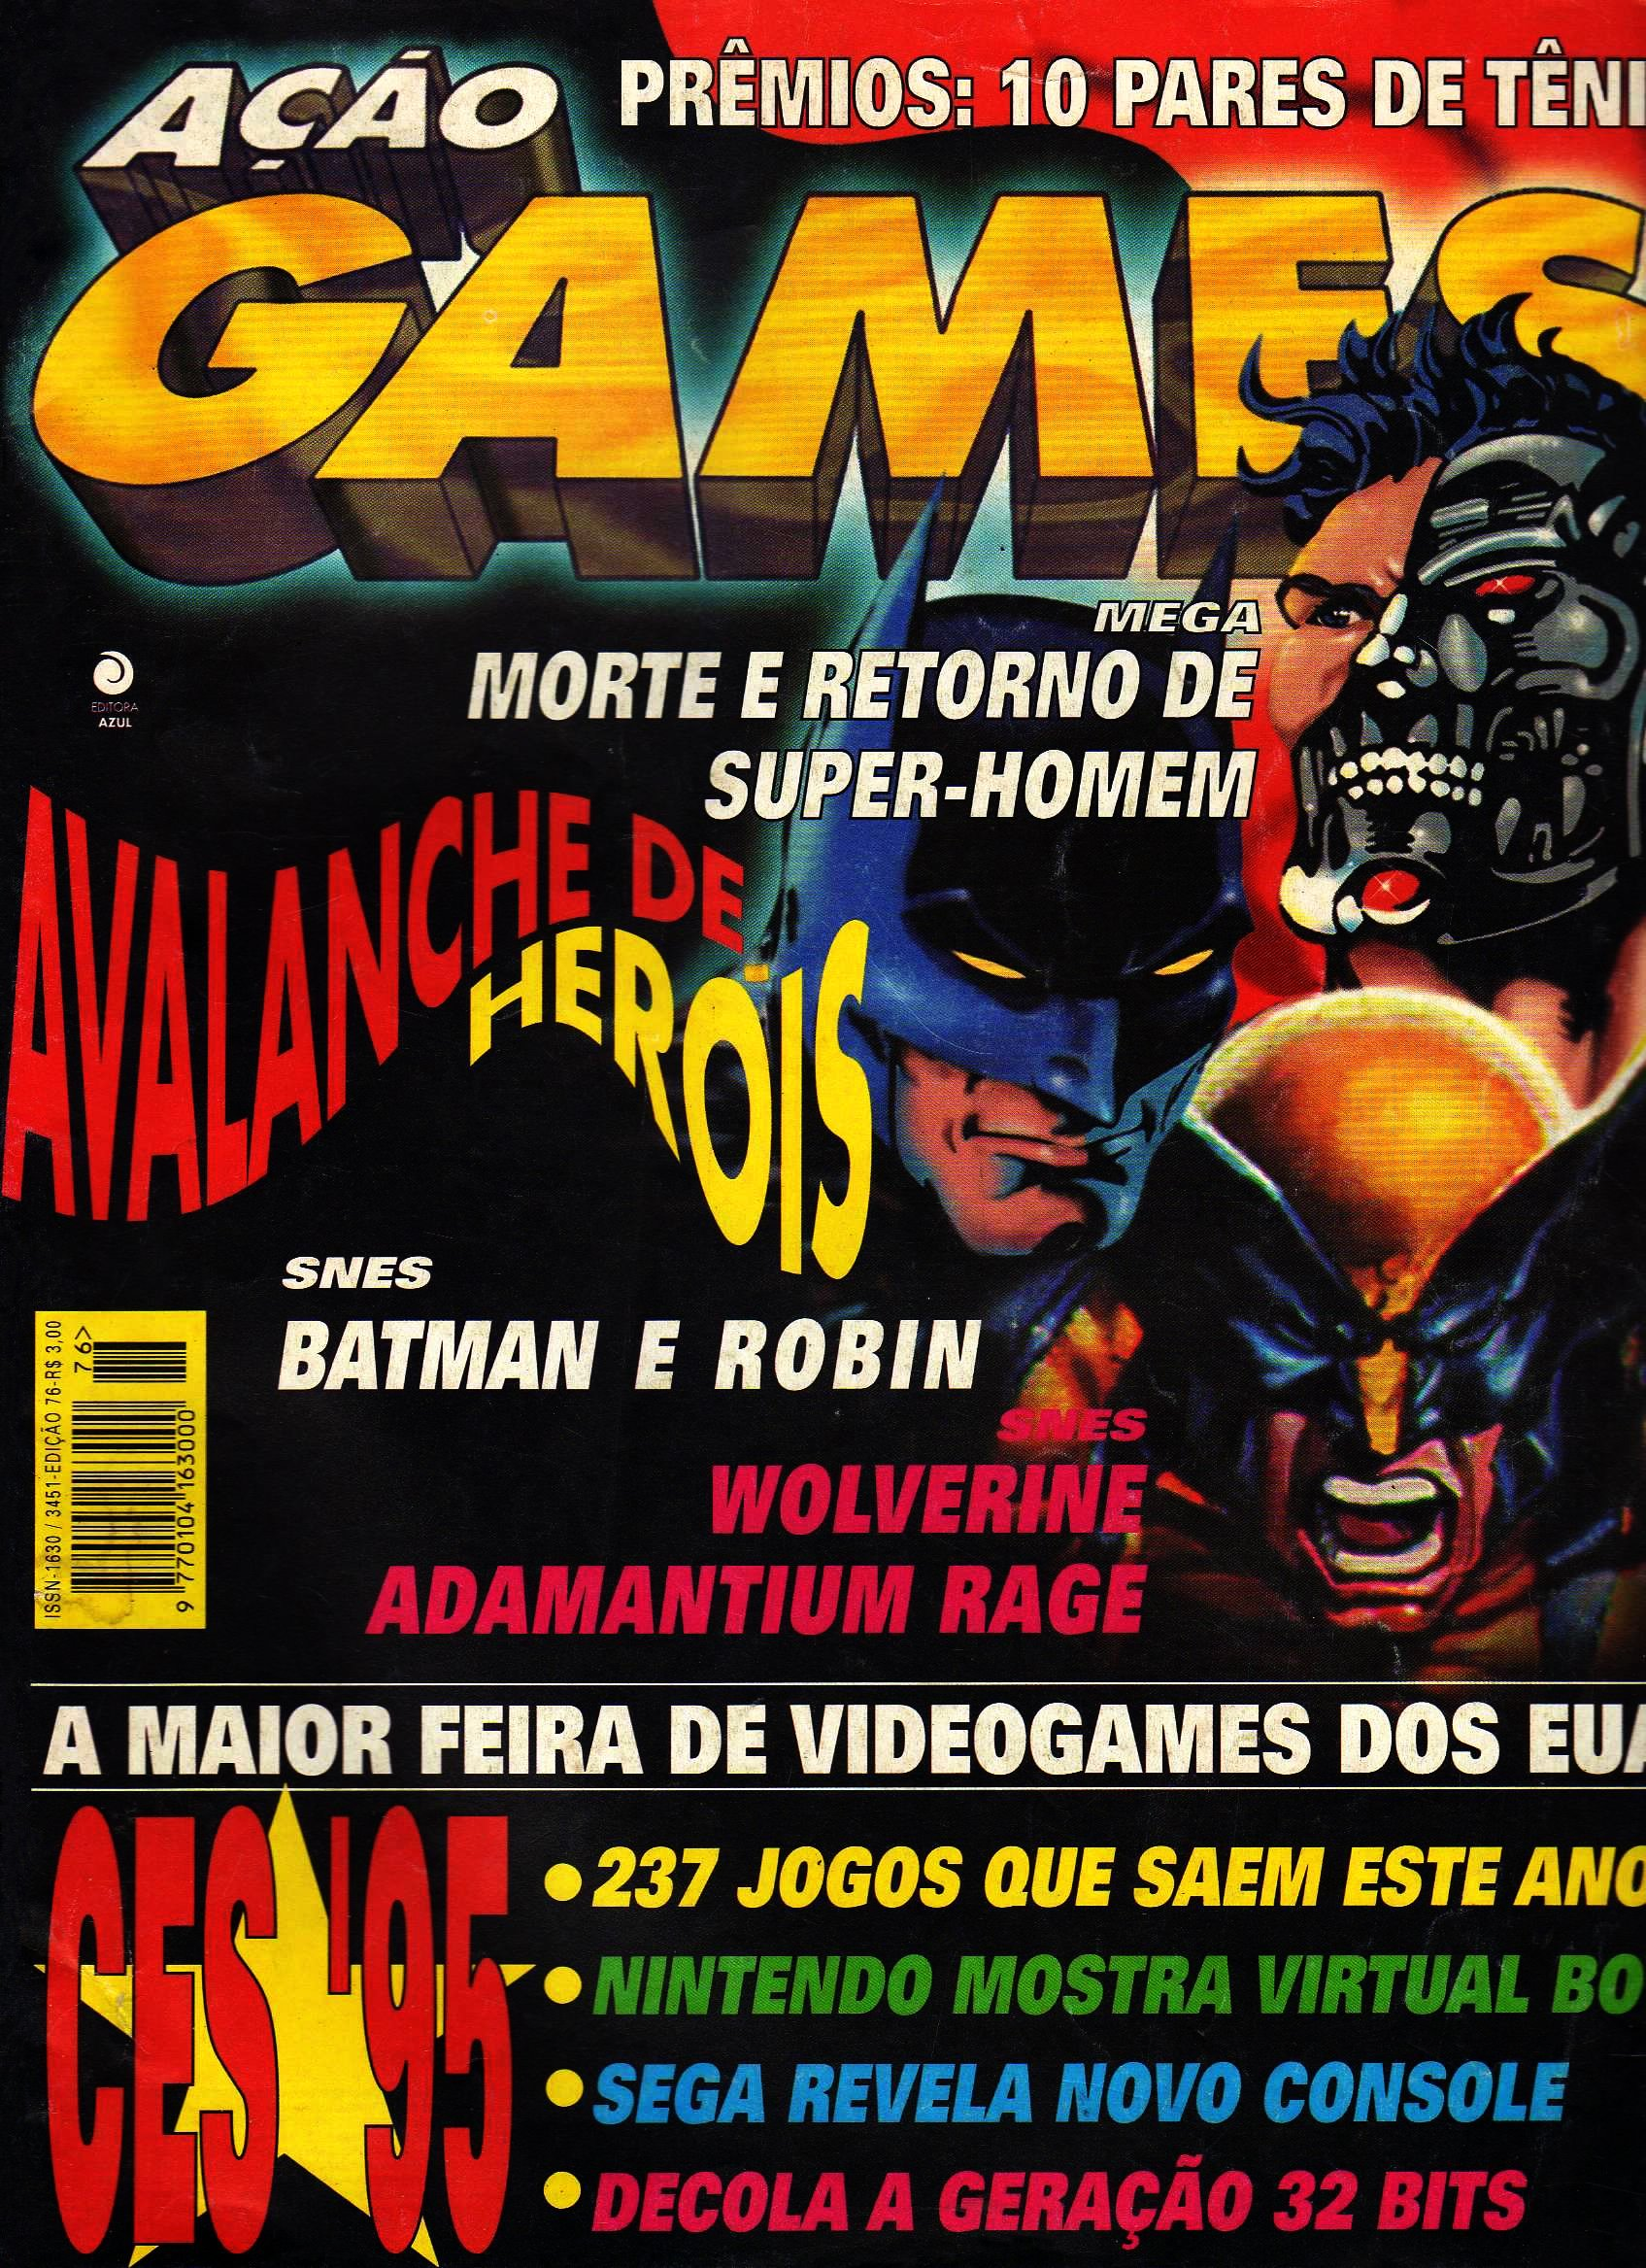 Acao Games Issue 076 (February 1995)